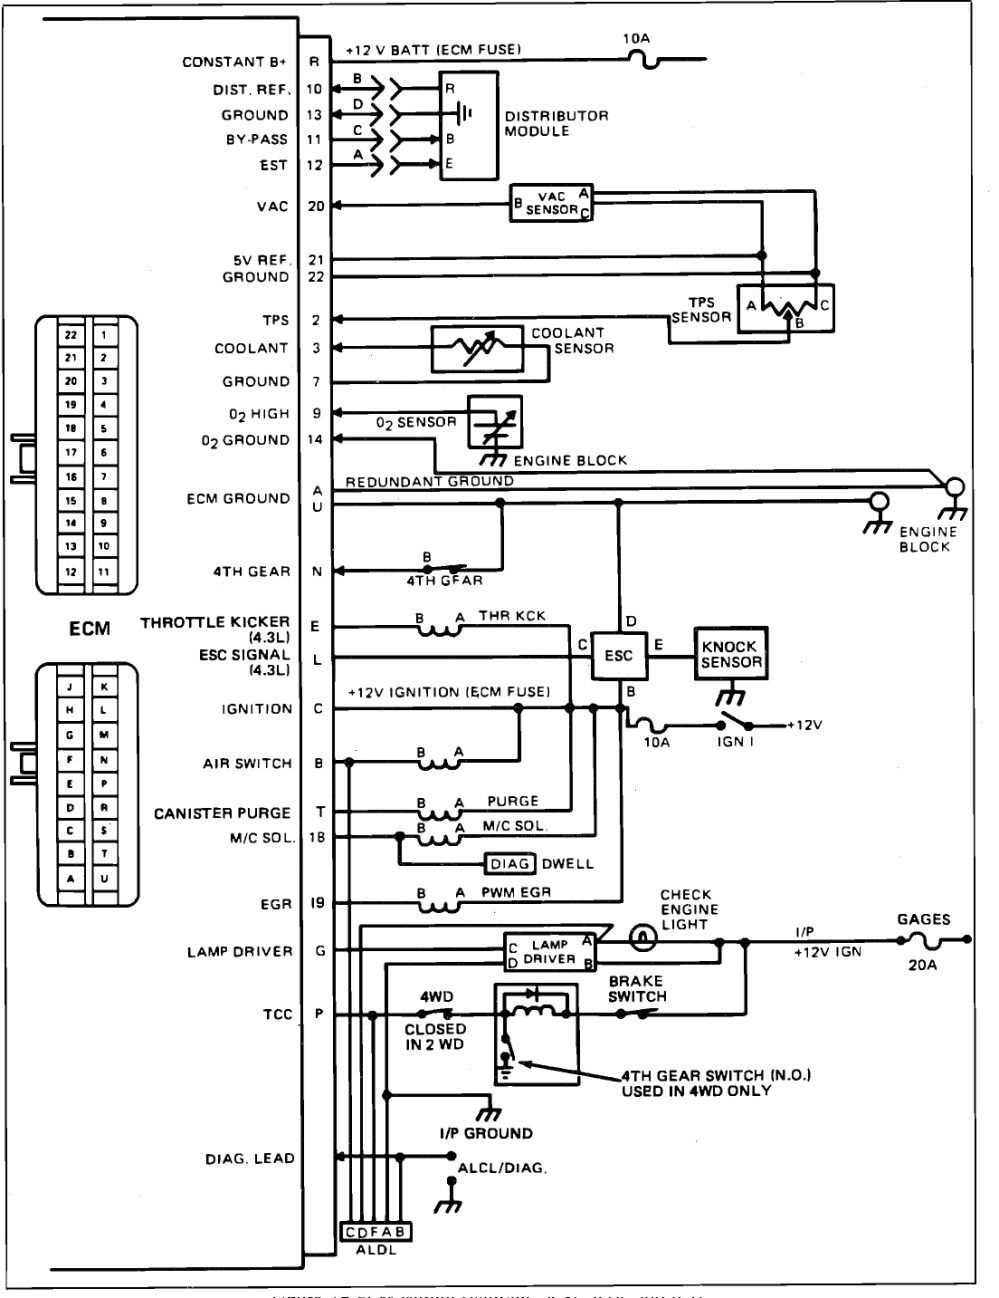 medium resolution of 1995 chevy g20 van wiring diagram wiring diagram load 1995 chevy g20 stereo wiring diagram 1995